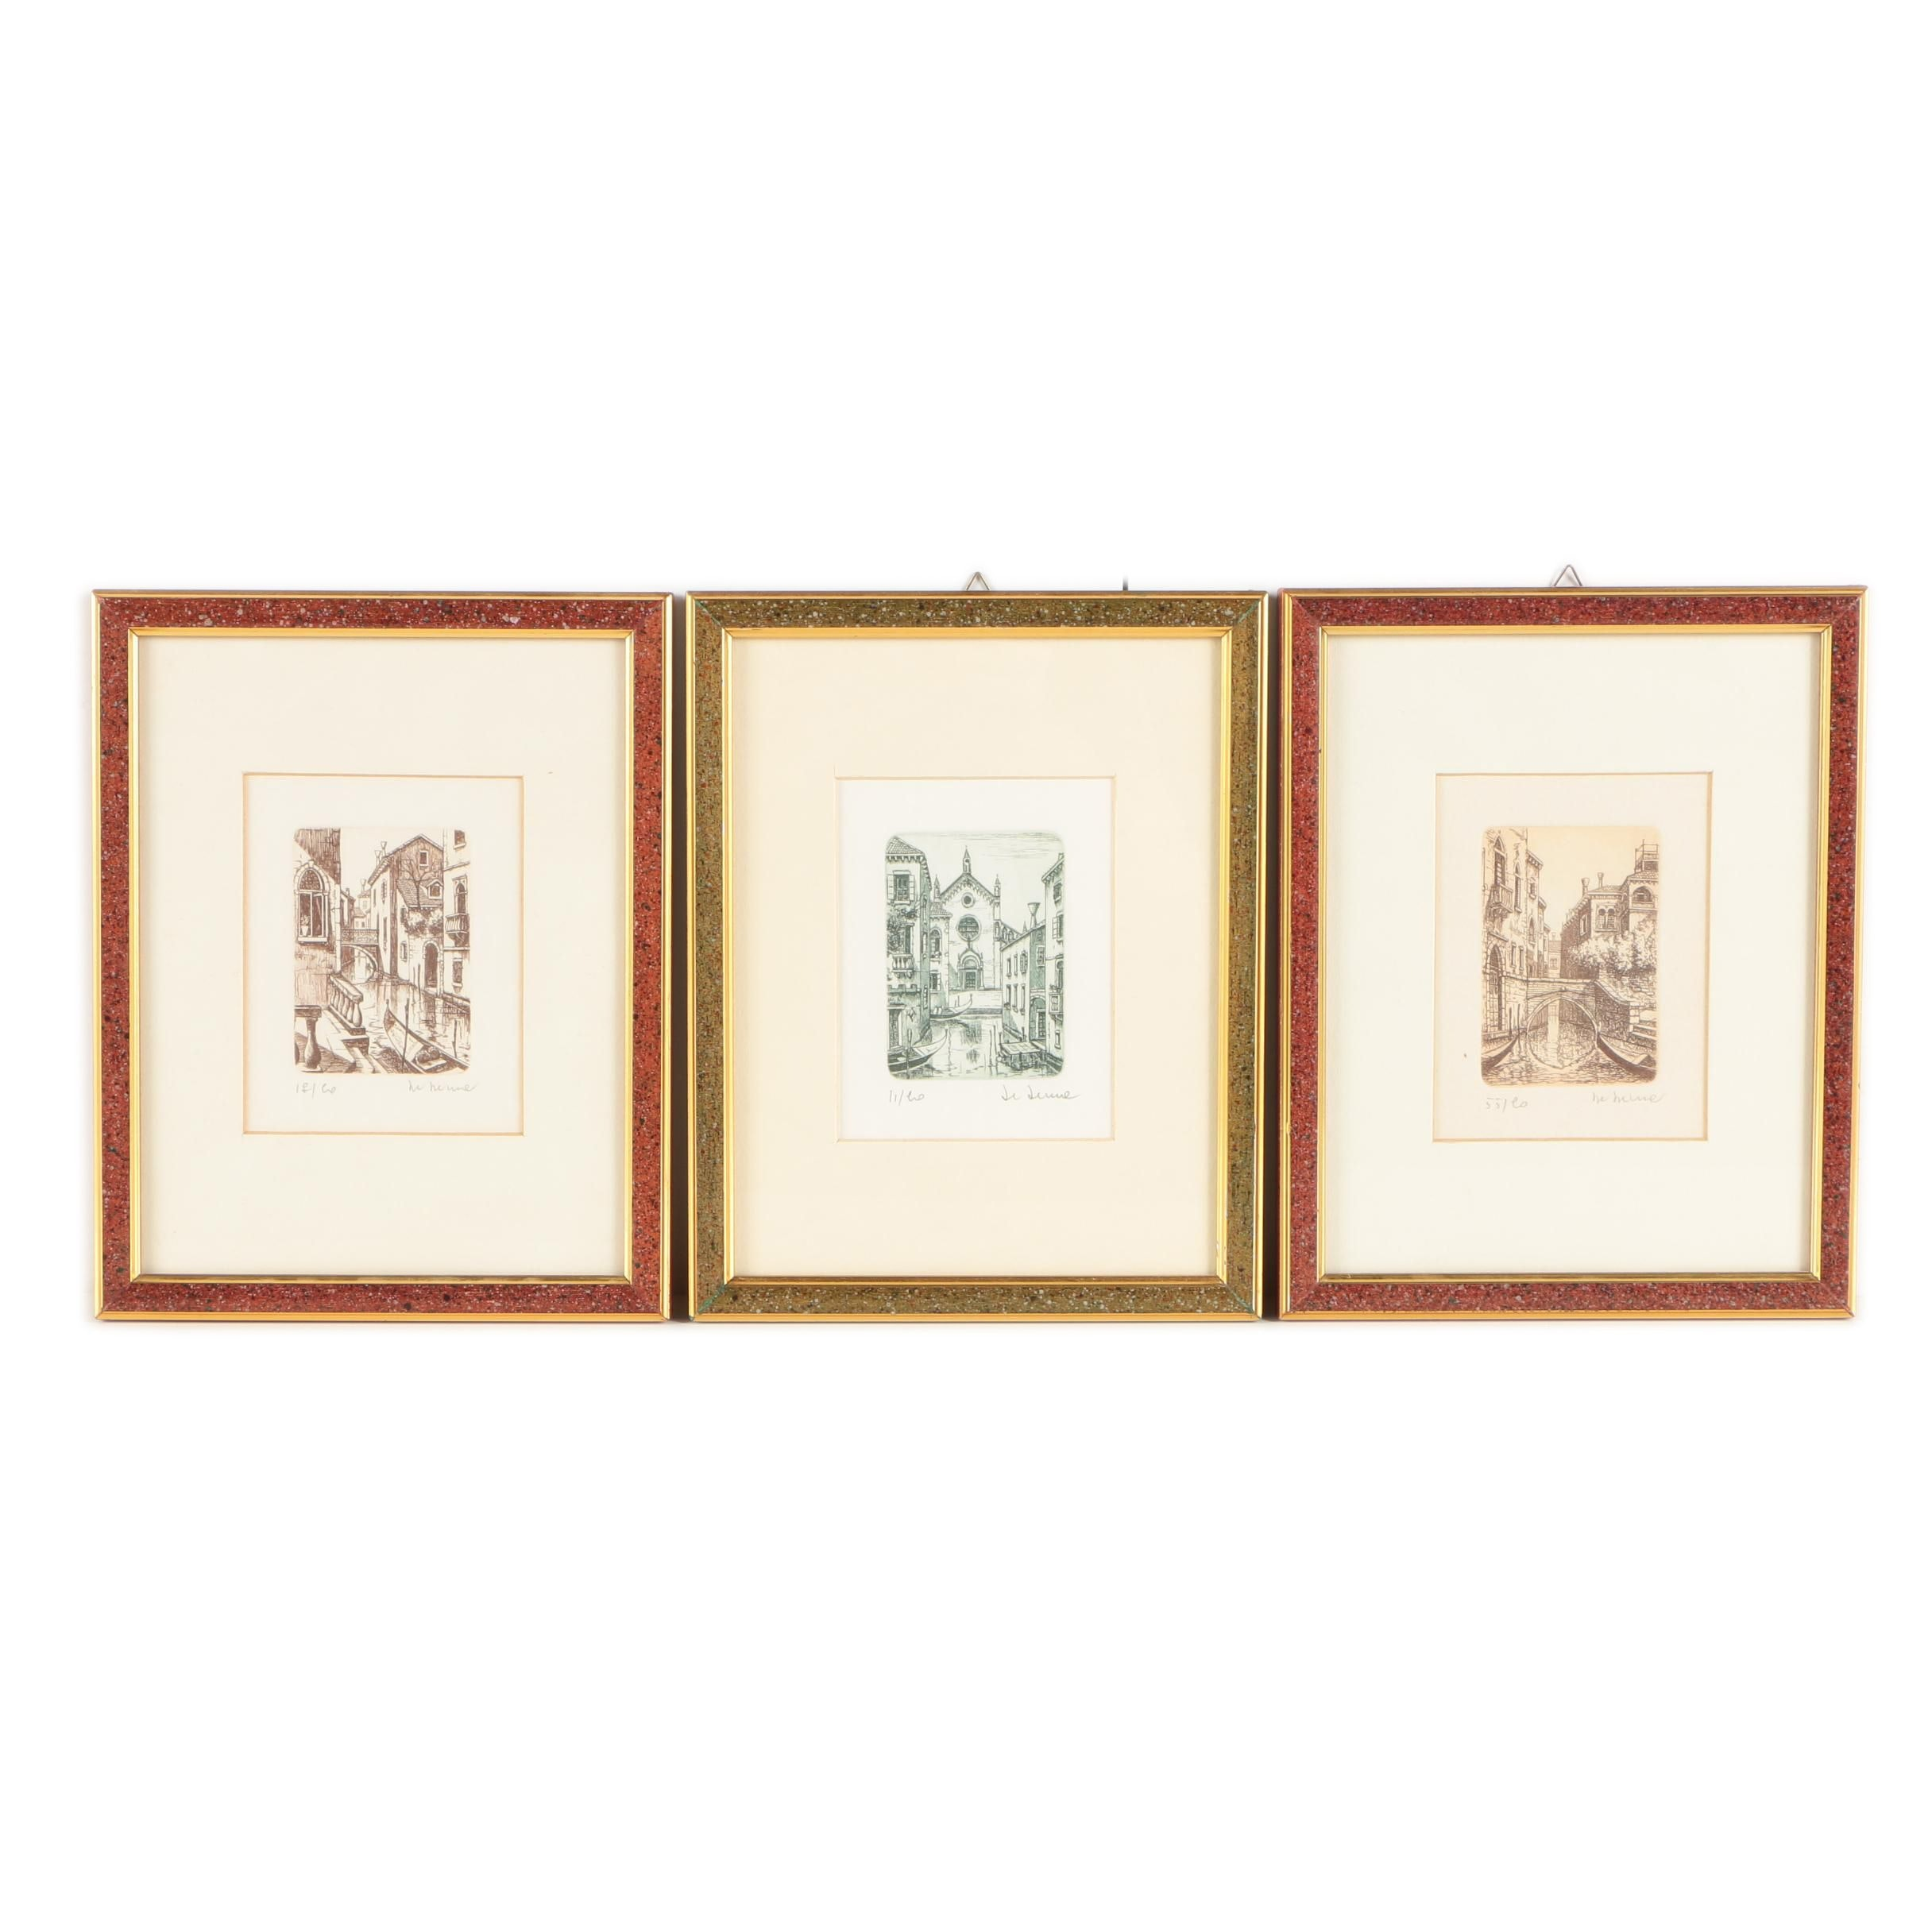 Limited Edition Etchings on Paper of Venetian Scenes